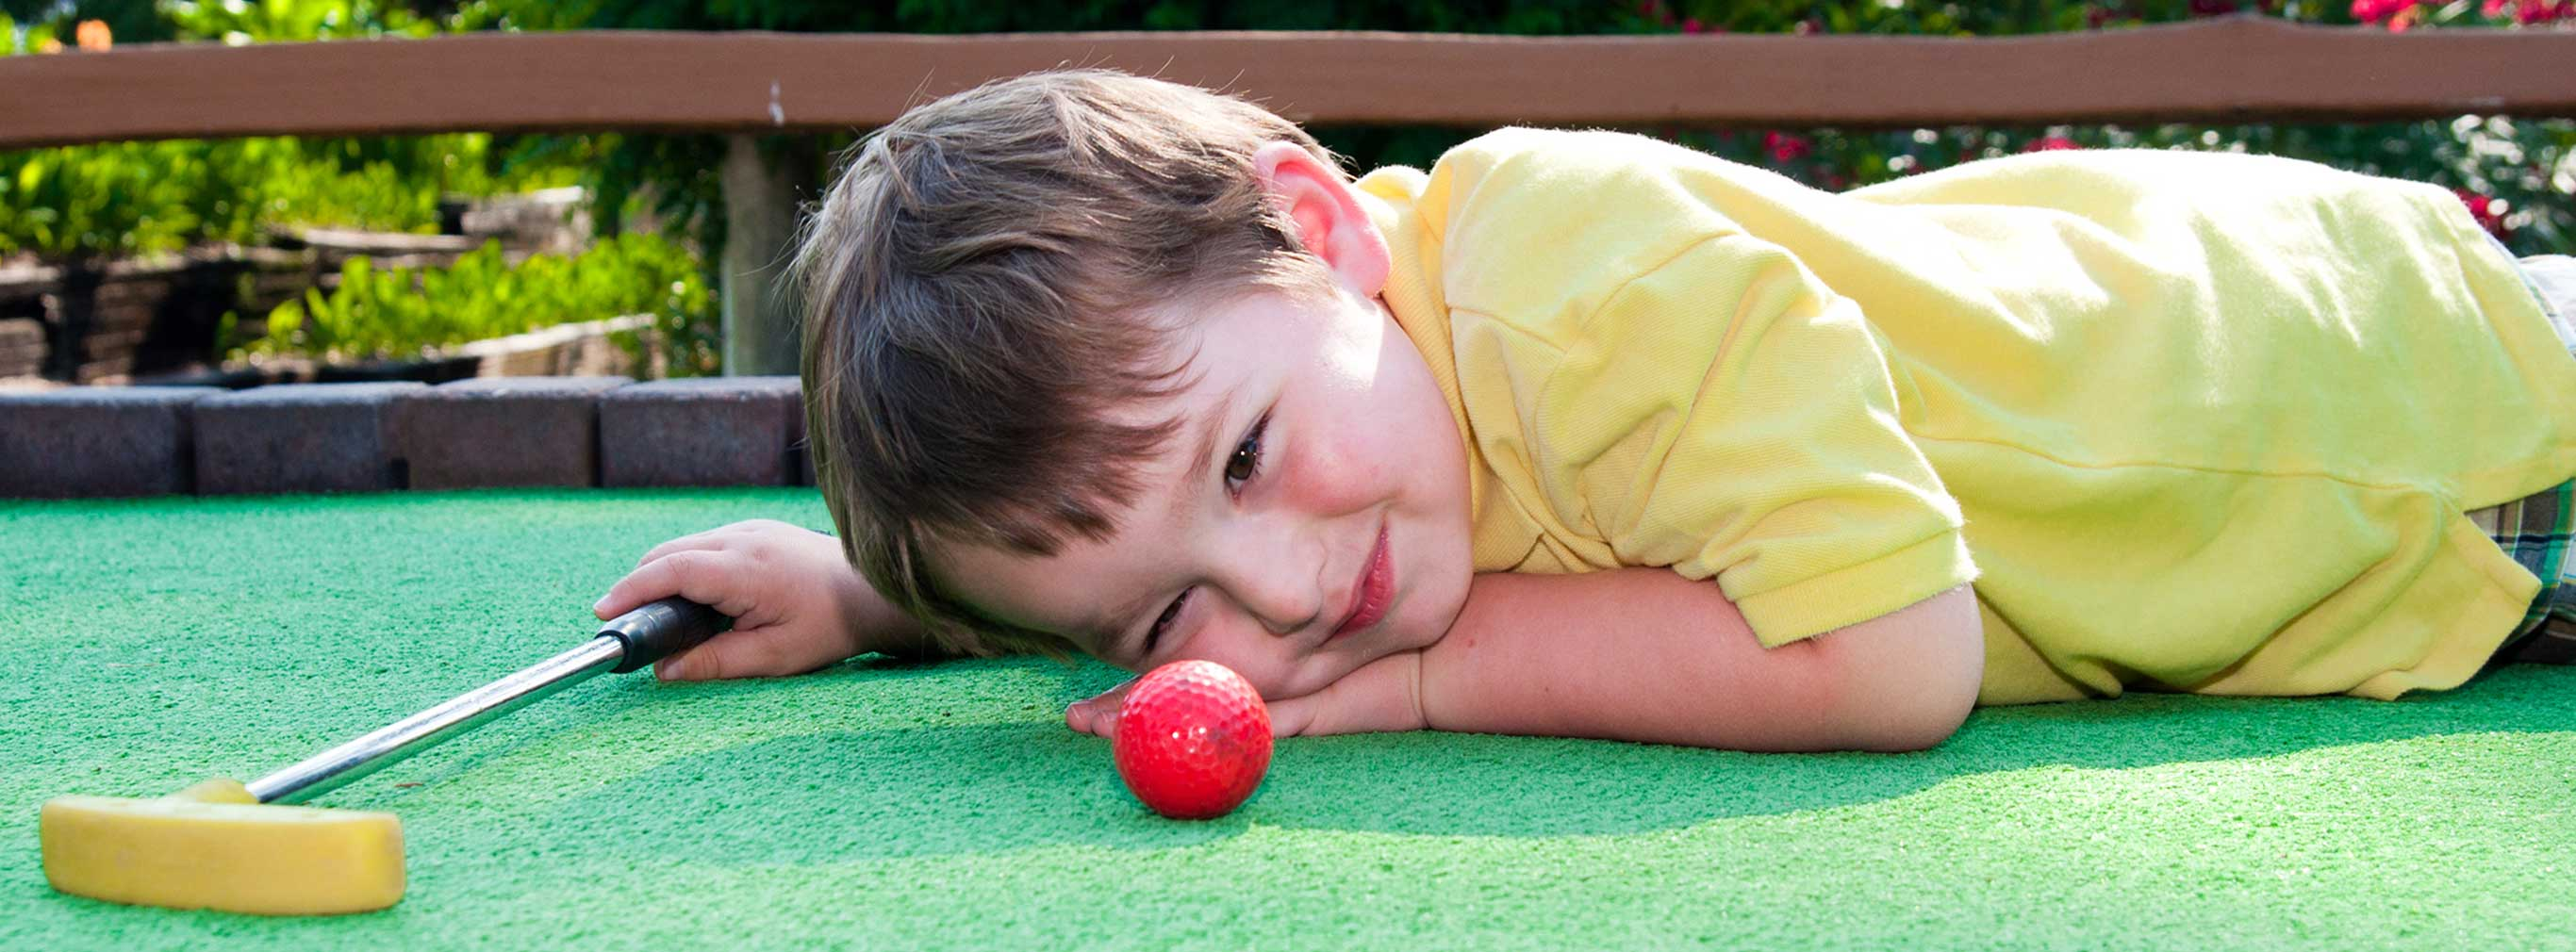 carnival amusements of s a child playing miniature golf